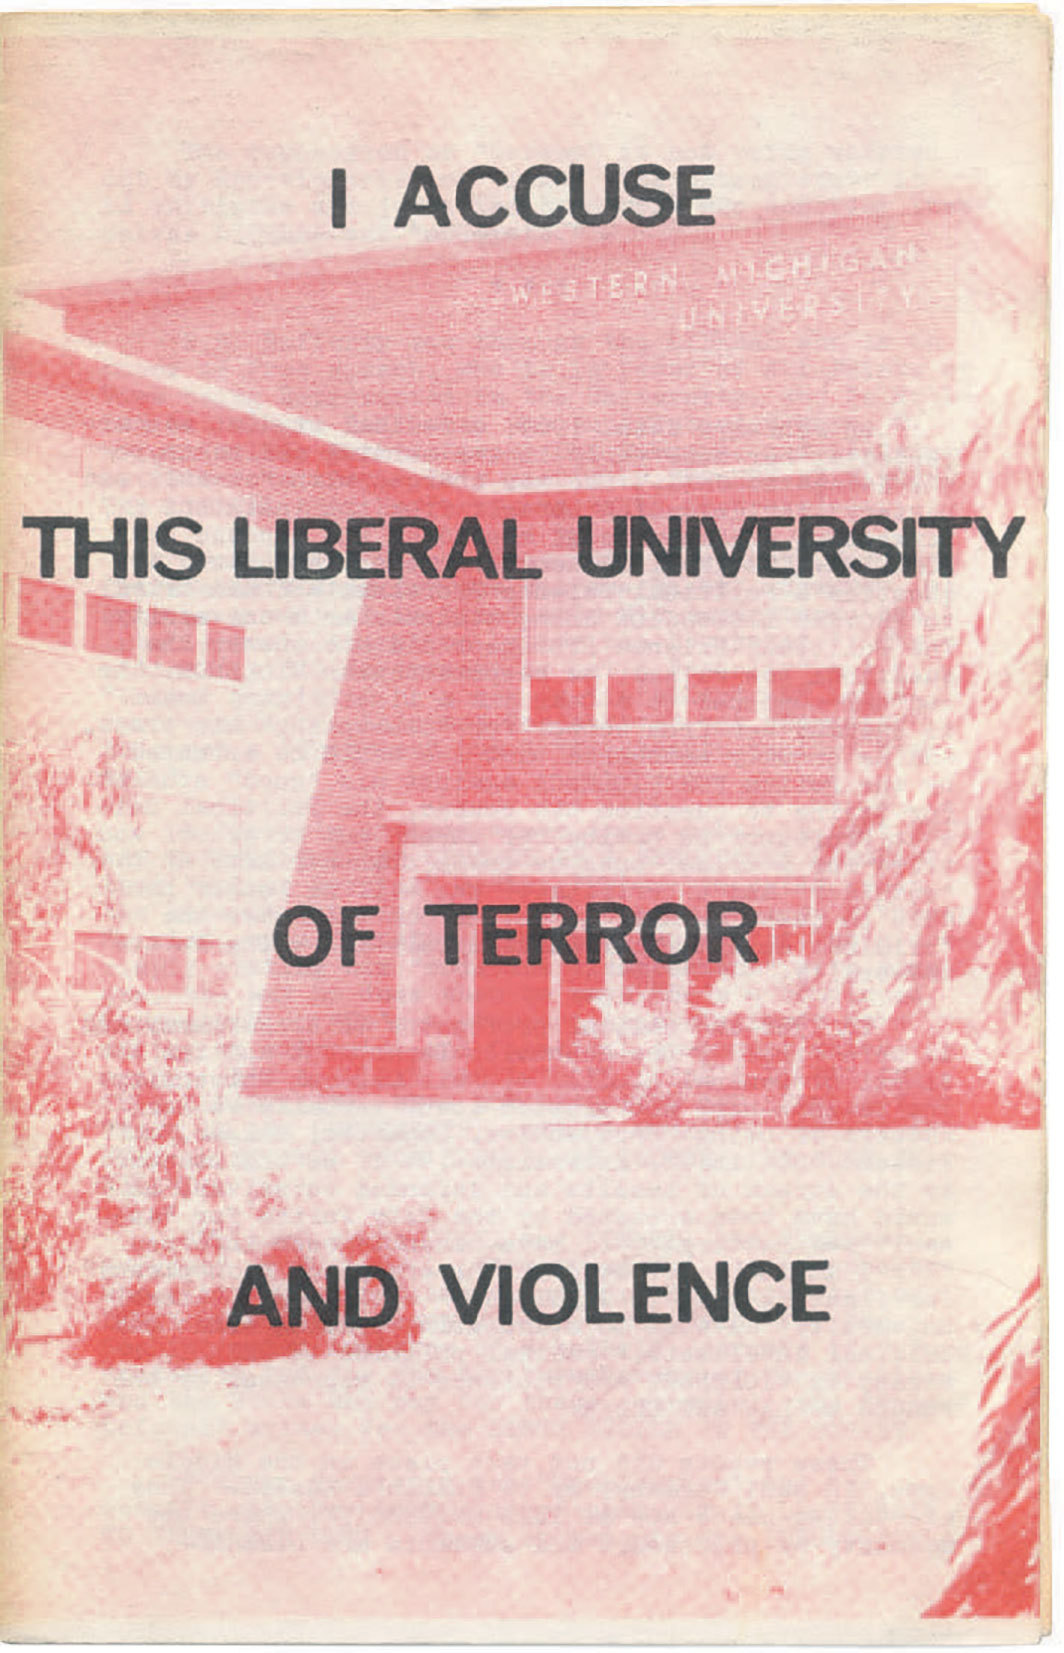 Cover of Fredy Perlman's I Accuse This Liberal University of Terror and Violence (Black & Red, 1969).